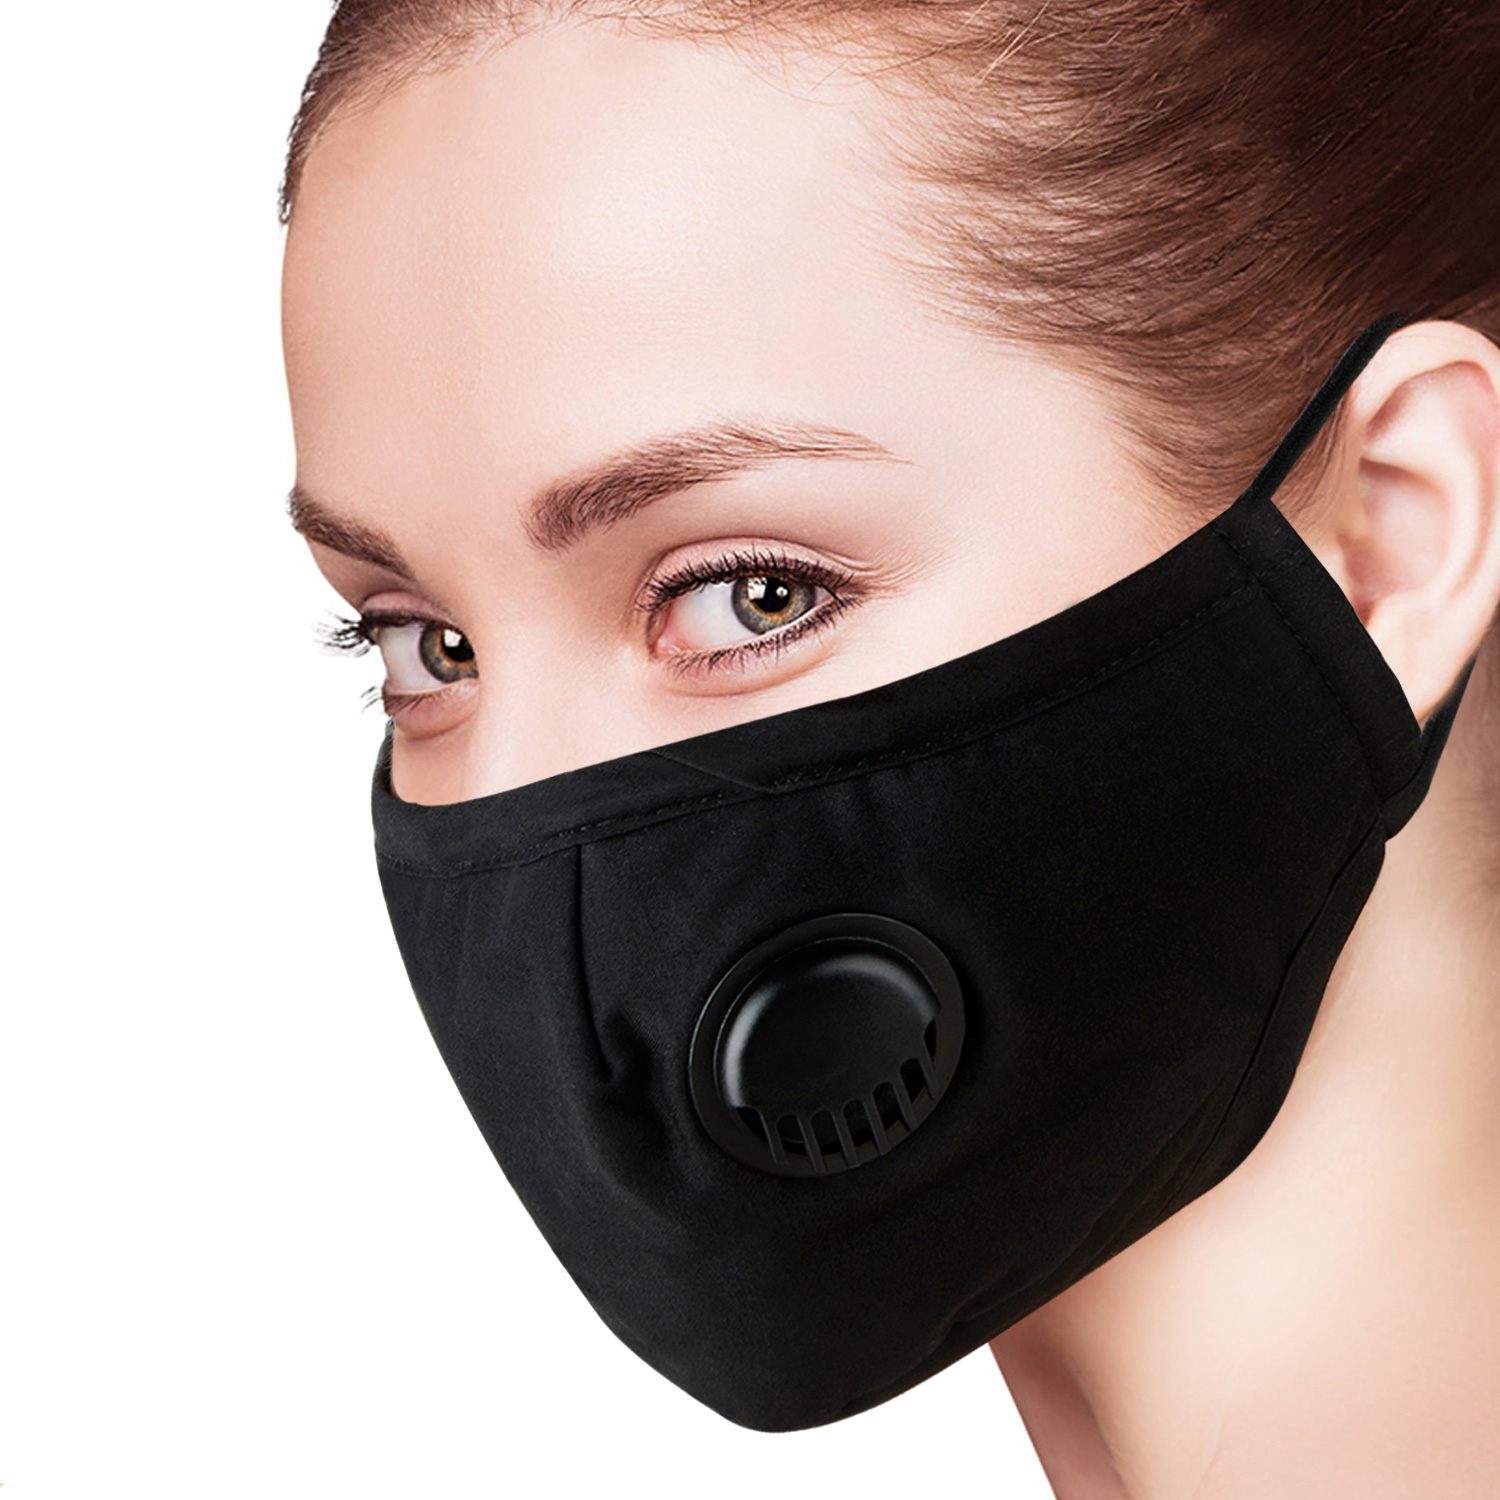 10 Pcs Face Mask Dust Mask Anti Pollution Mask PM2.5 Activated Carbon Filter Insert Black Breathable Valve Mask Mouth Cover